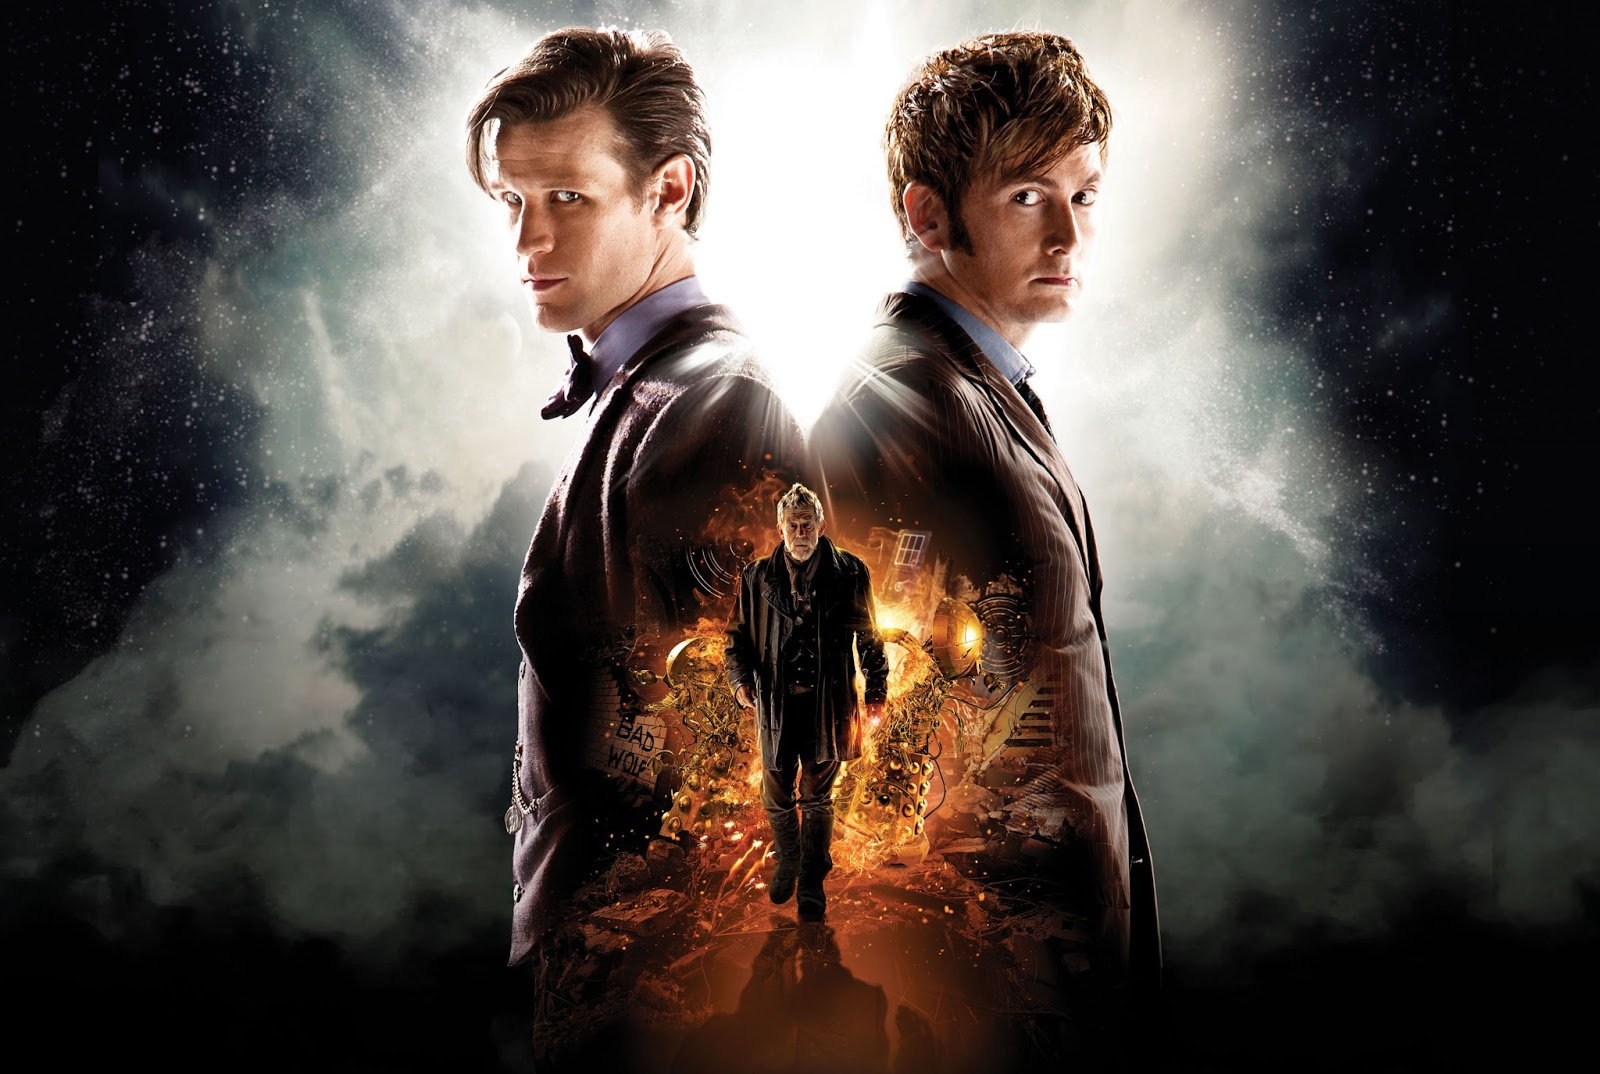 Doctor Who 50th Anniversary Episode Review: Day of the Doctor